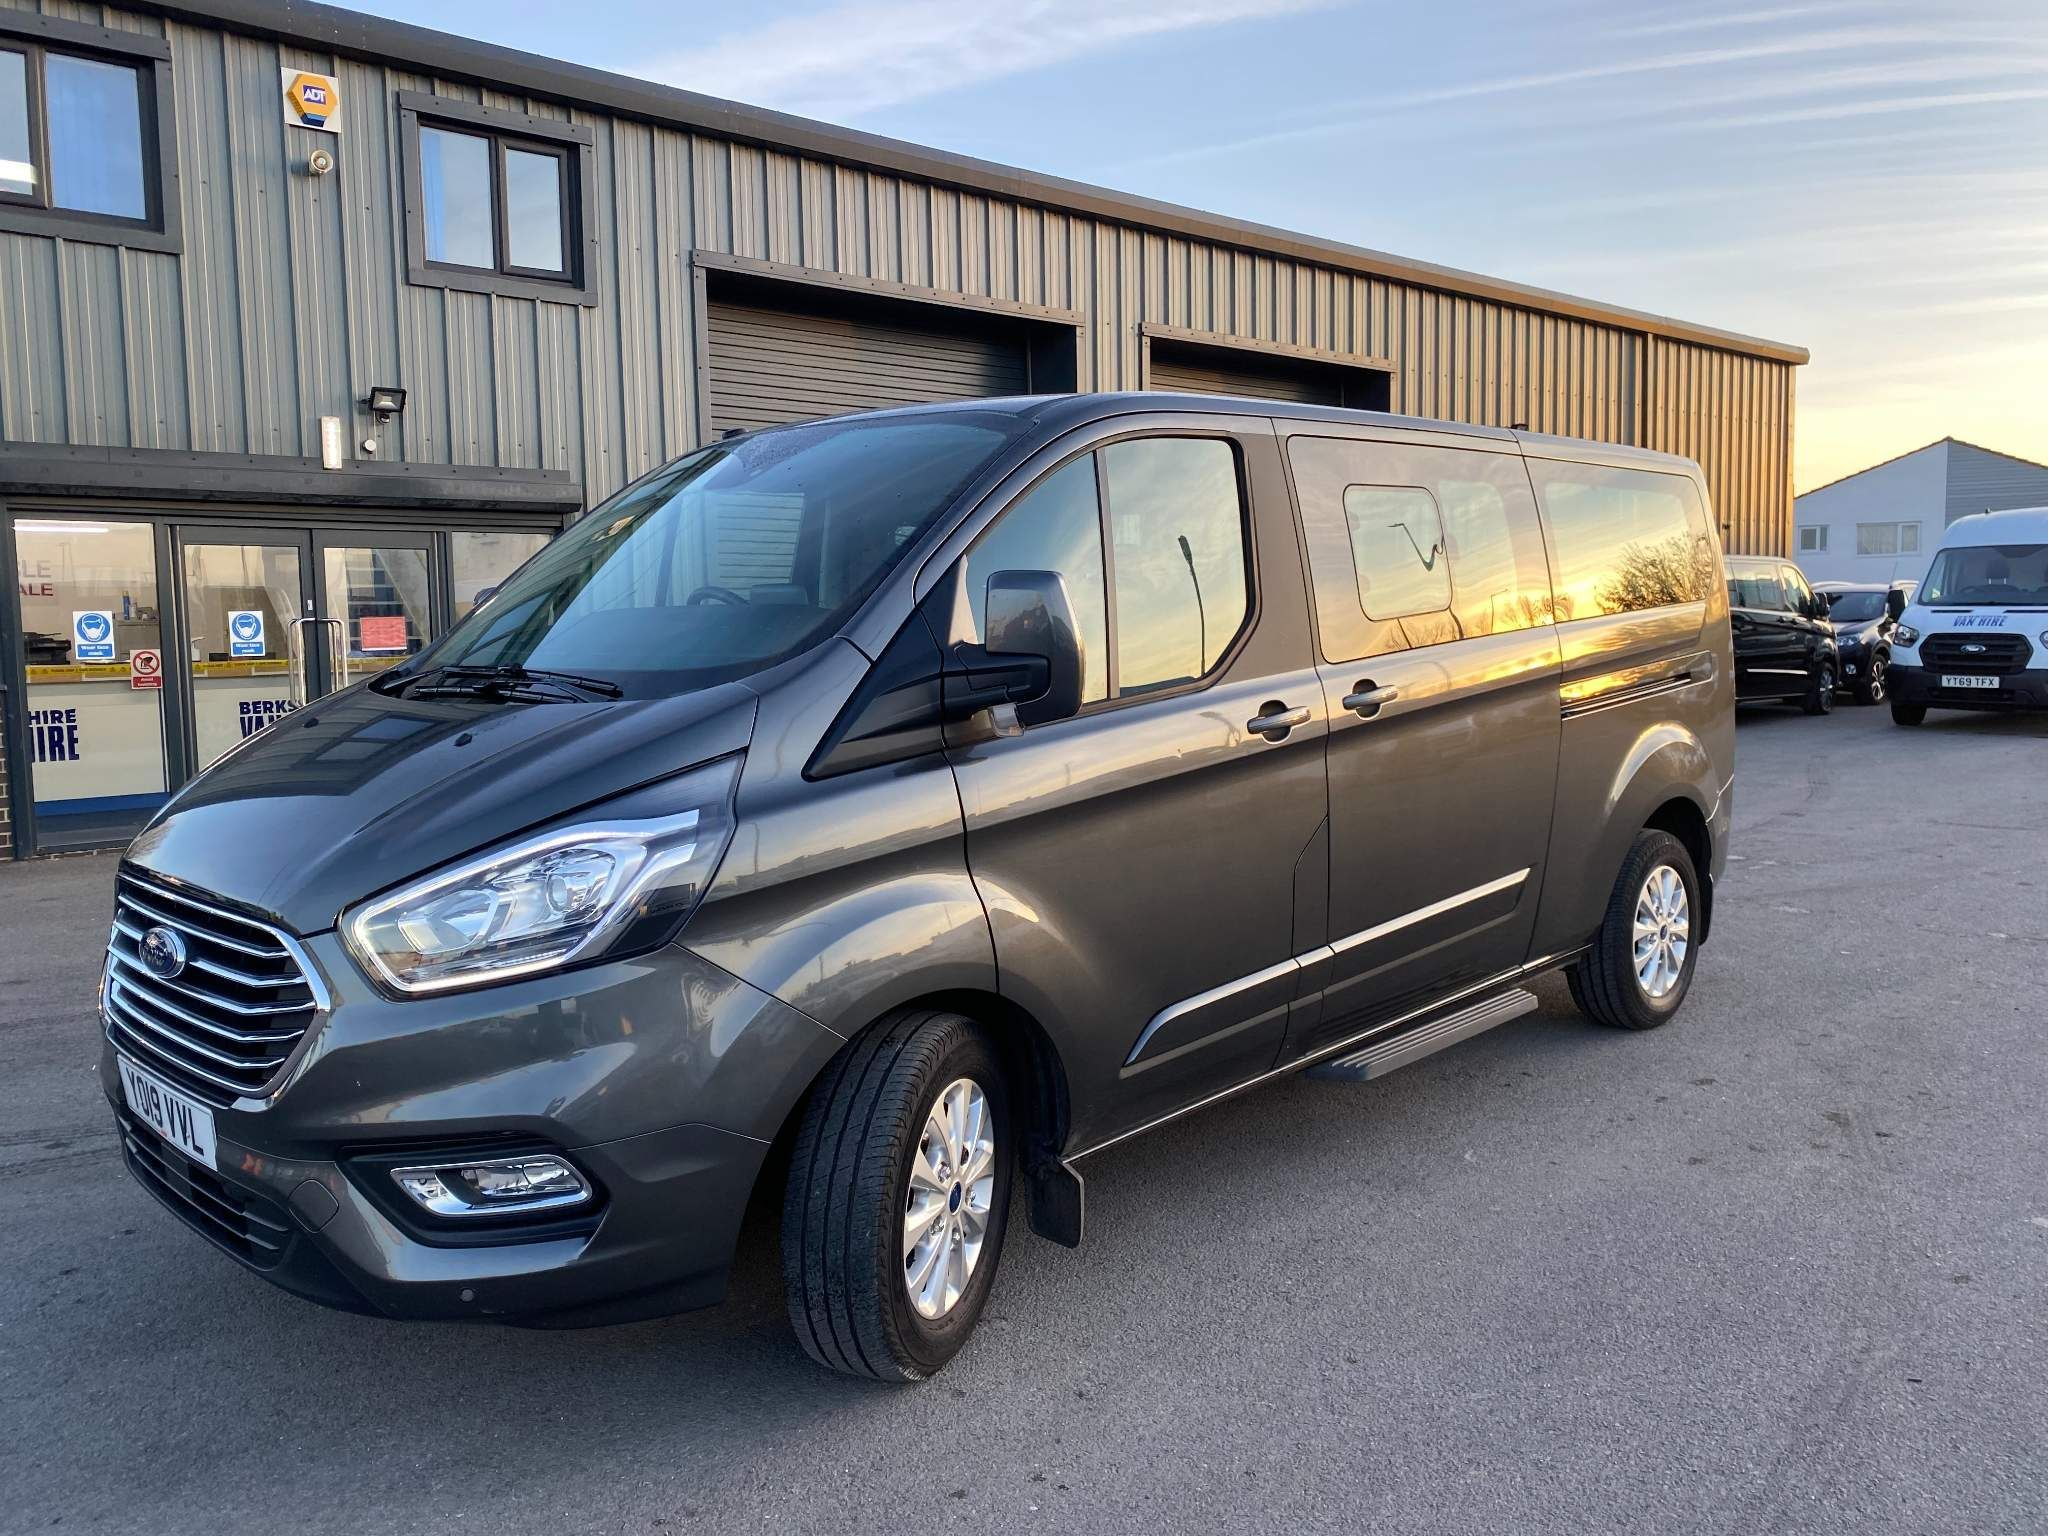 Ford Tourneo Custom Mini Bus 9 Seater For Sale